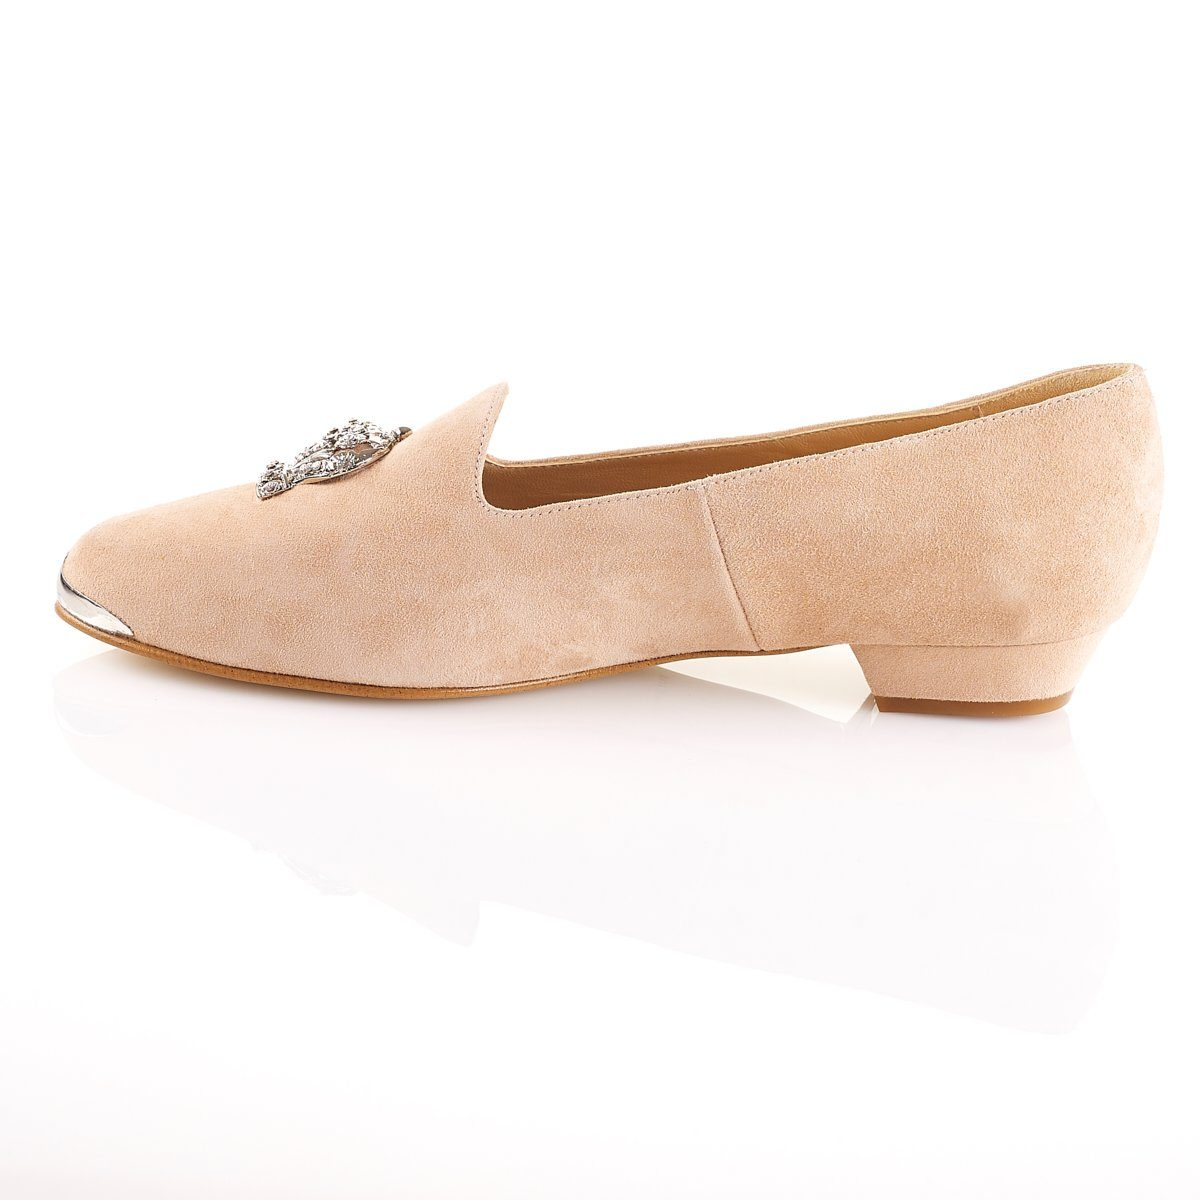 She Reigns - Luxury Flat Blush Shoes - Shoes by Shaherazad